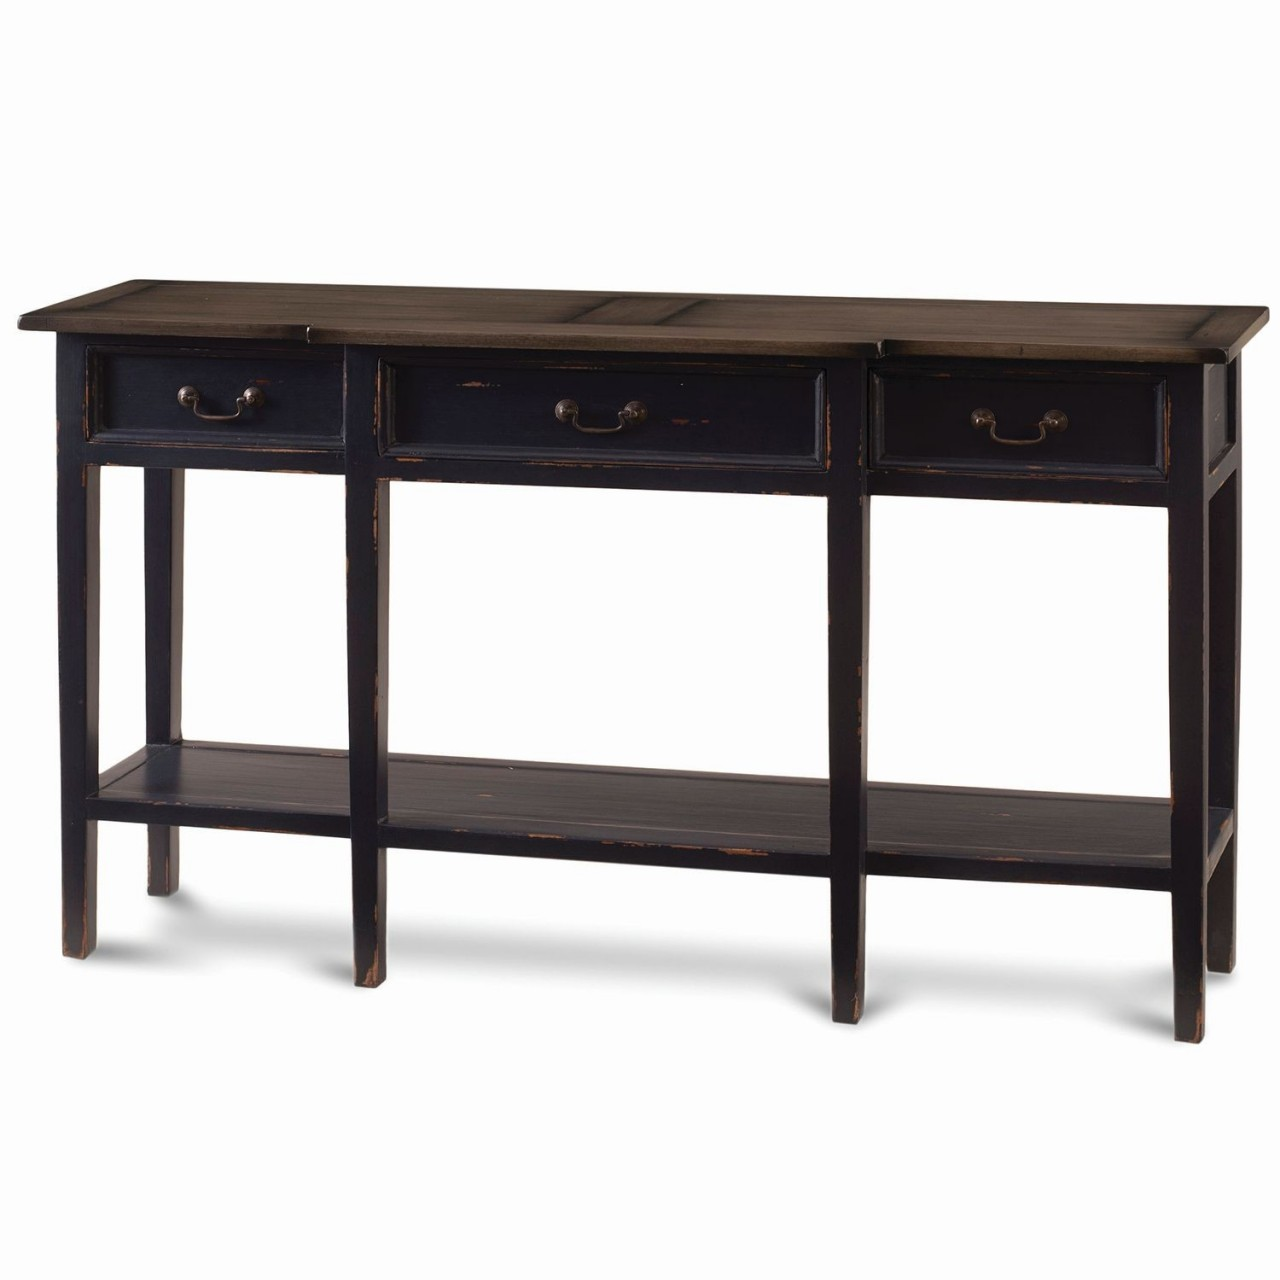 Montego Dining Table Images Room Design Ideas